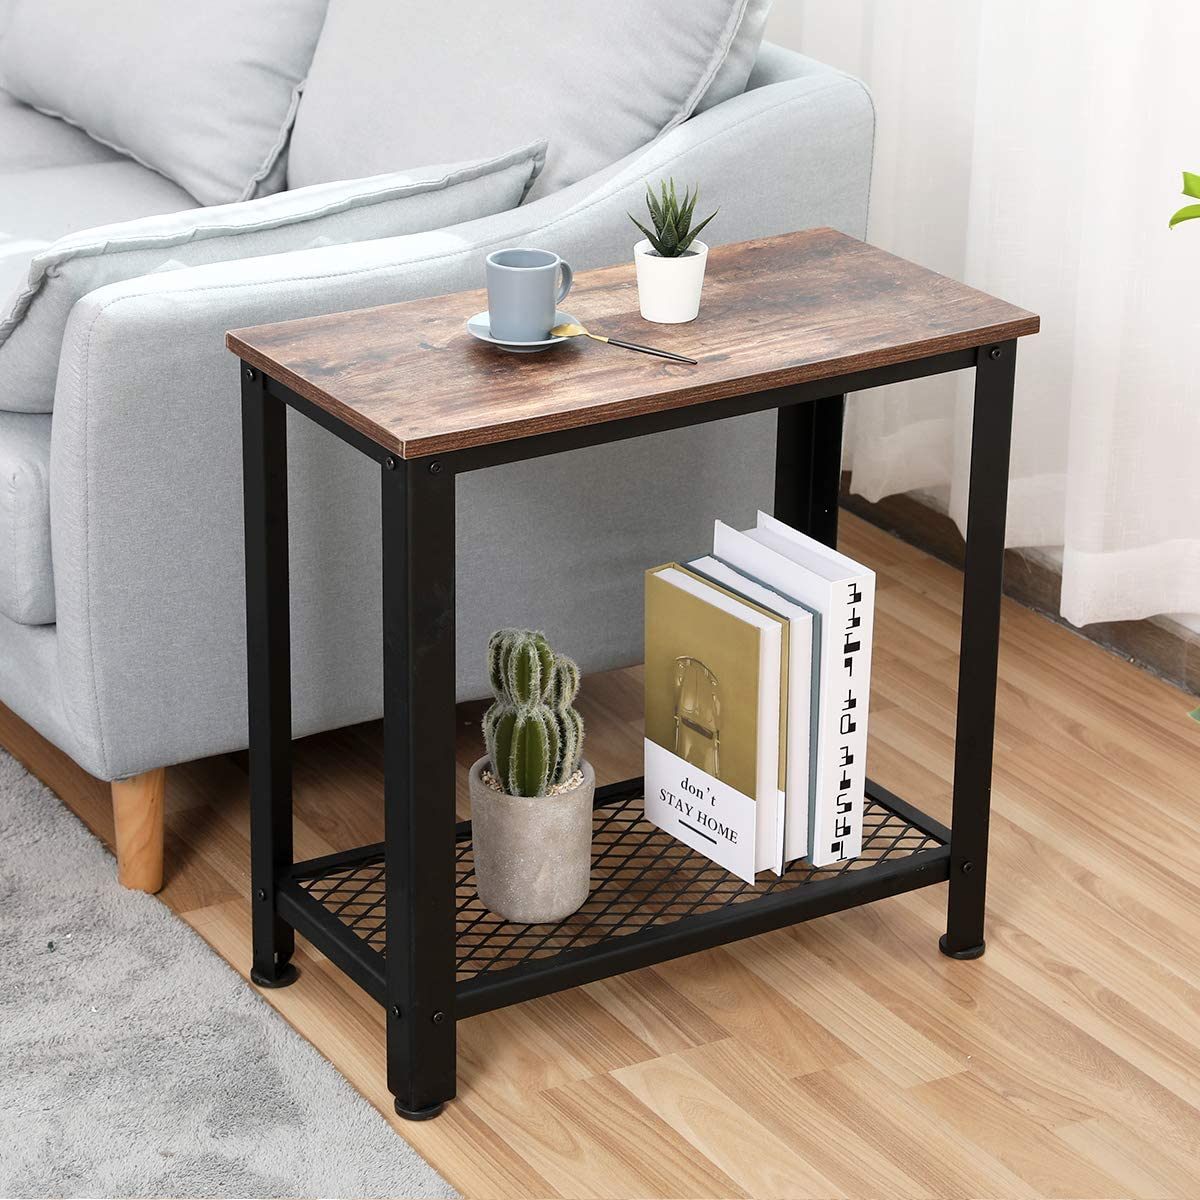 Industrial Console Table, Bonzy Home Entryway Table with Metal Mesh Shelf Hallway Table for Living Room, Sofa Table